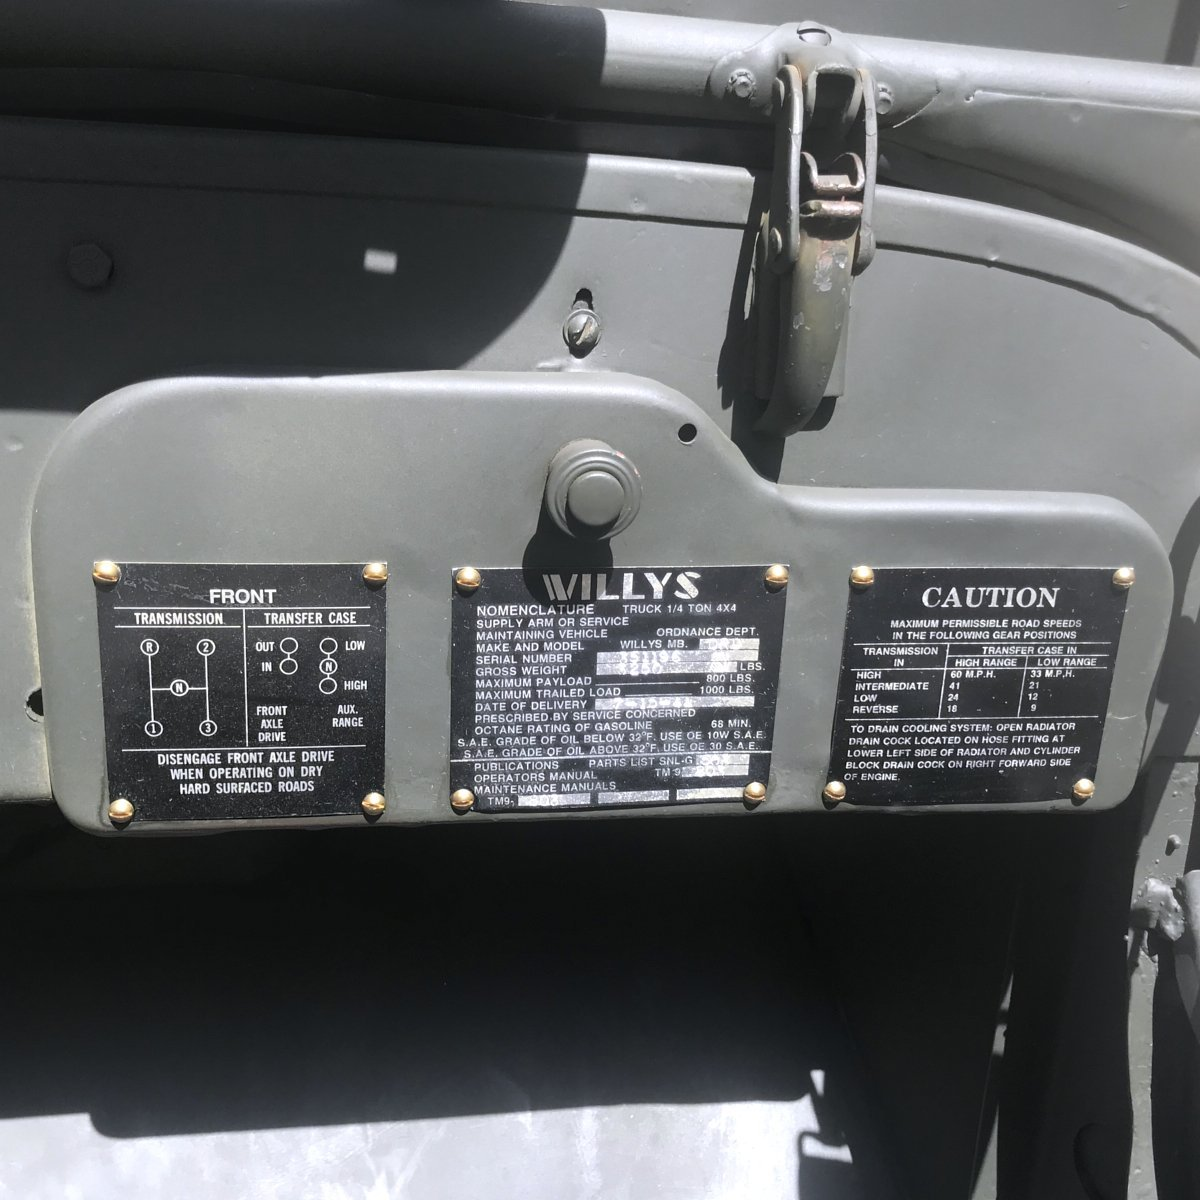 Original Us Wwii 1944 Willys Mb Jeep With Correct Serial Numbers Number Location Fully Restored